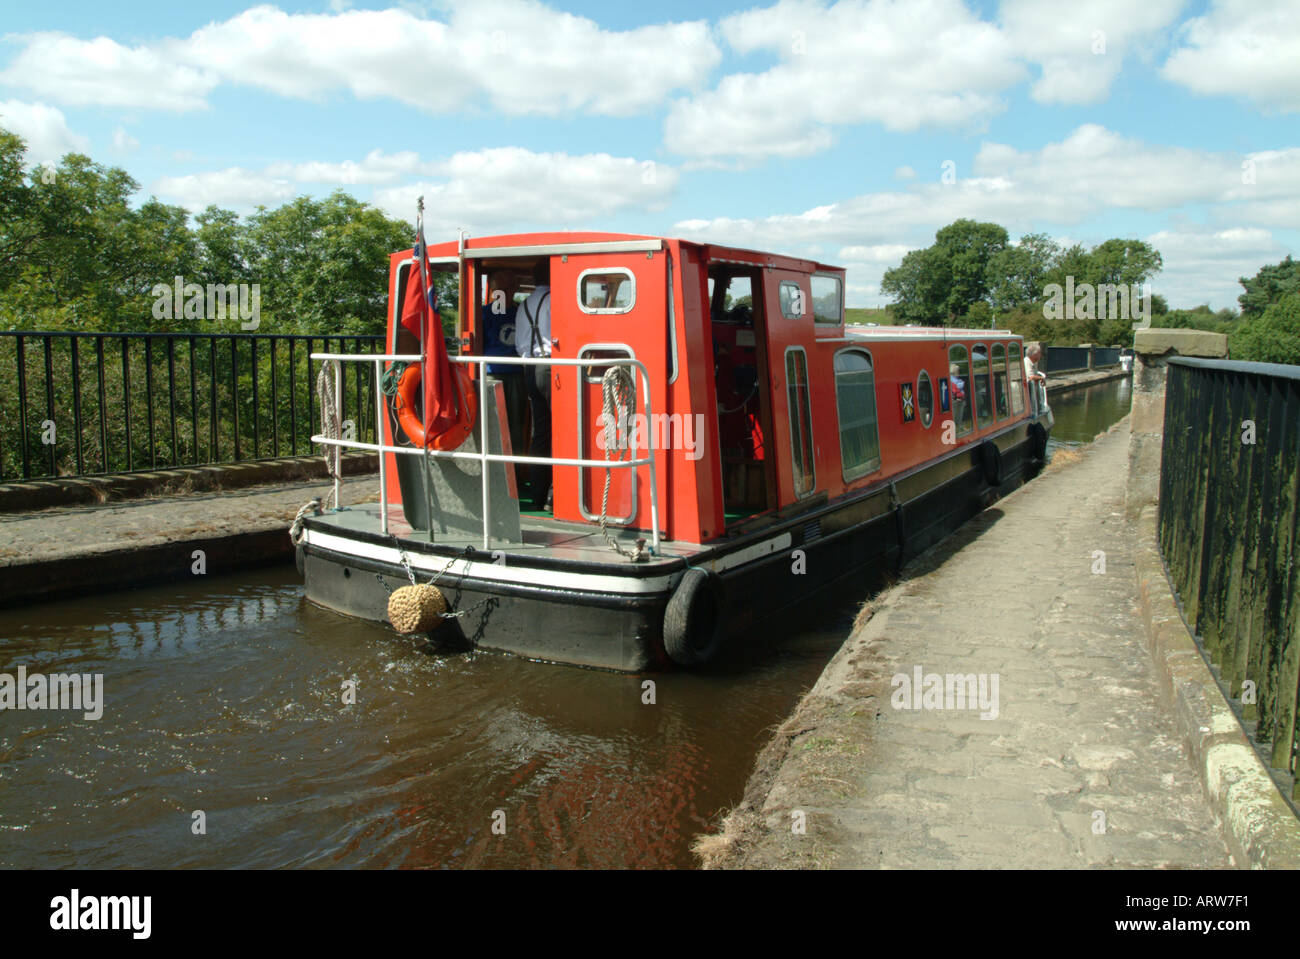 A narrow boat on the aqueduct over the river Almond in West Lothian Scotland Stock Photo